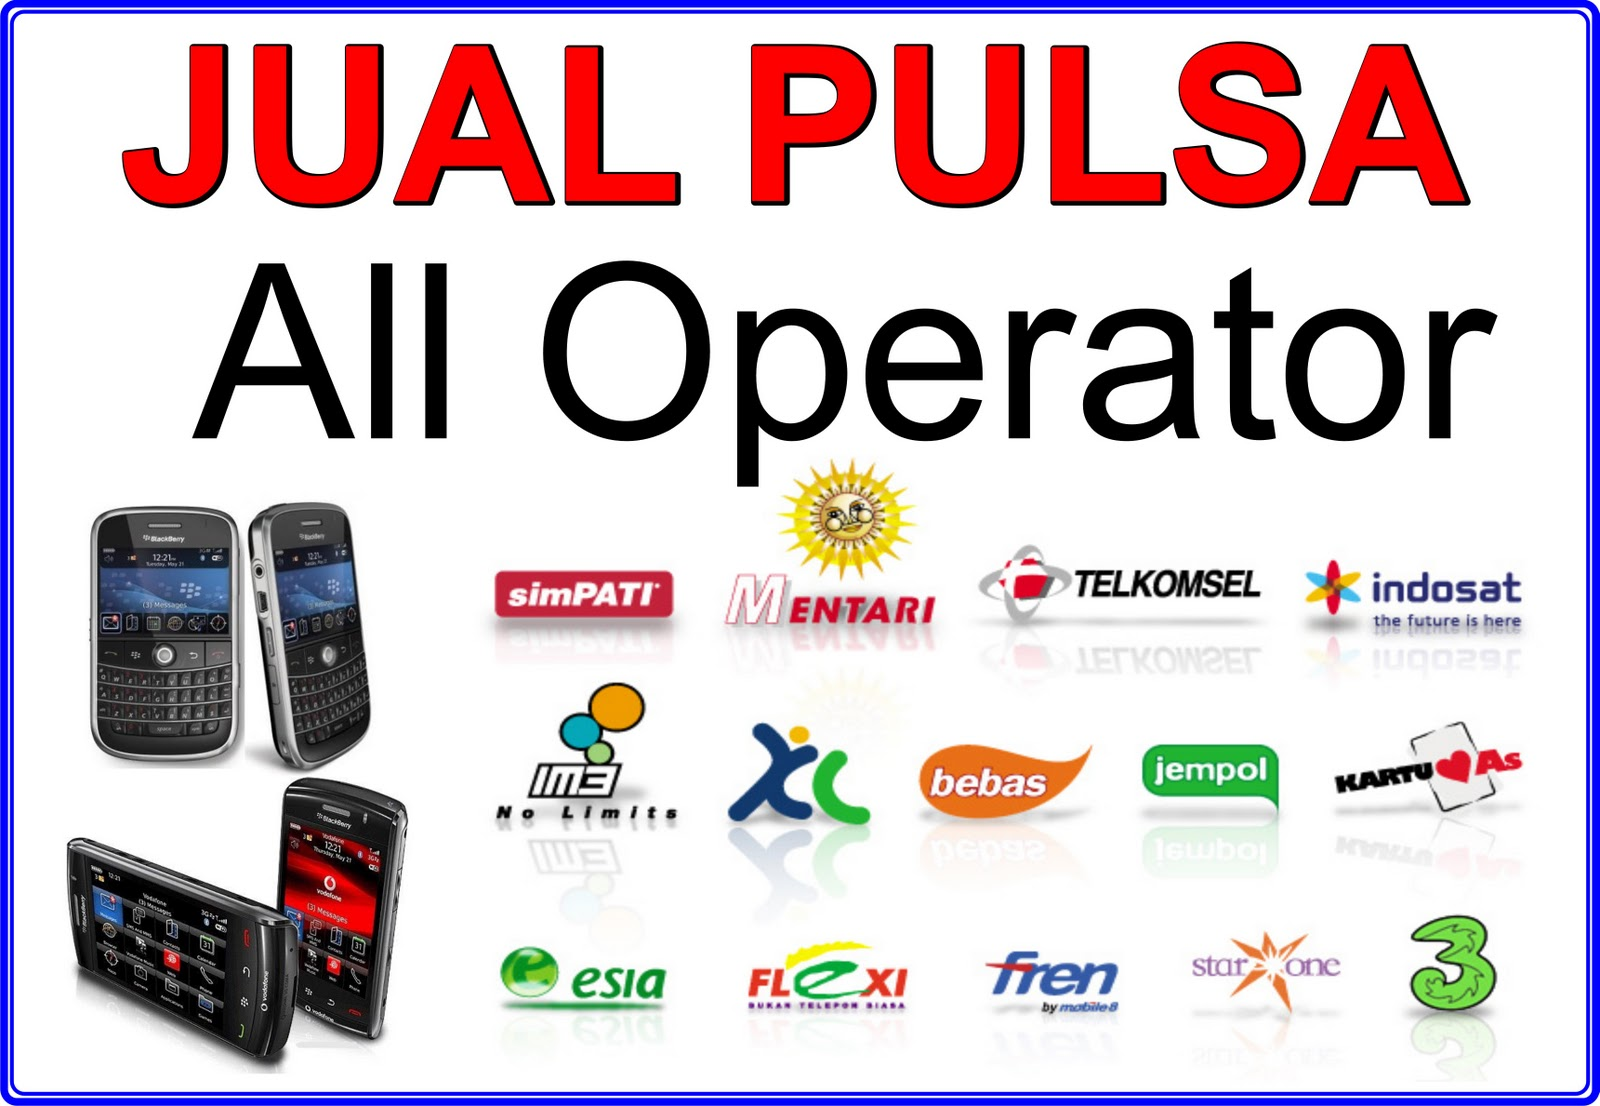 Image Result For Pulsa All Operator Murah Malang